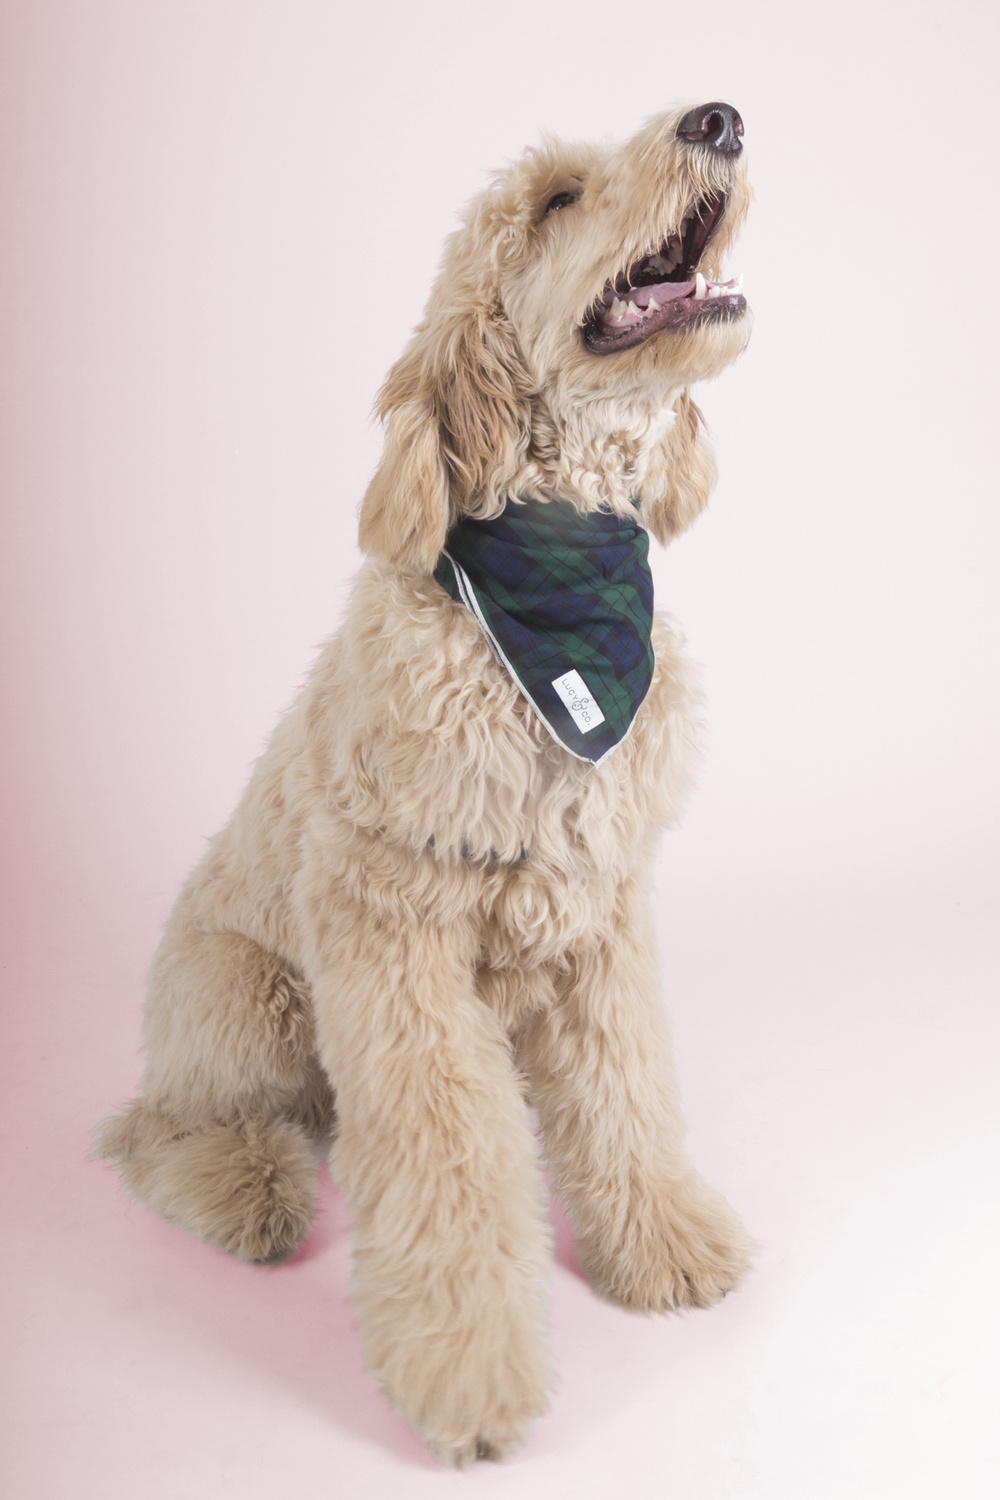 Benny's dream date - Benny enjoys long walks on the Beltline, chasing squirrels, while sporting his new favourite bandana he got from The Goodboy Shop.  Check out the video below for more Benny!